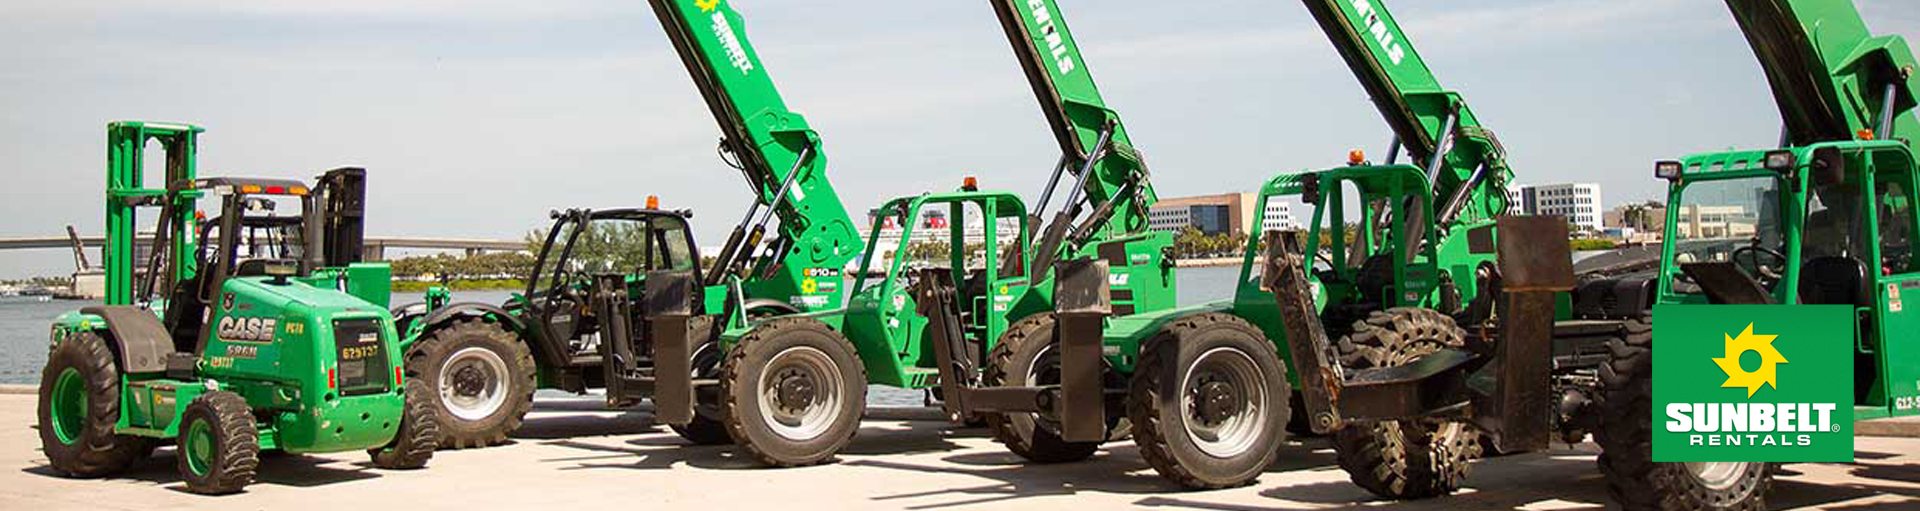 Sunbelt Rentals Equipment For Sale